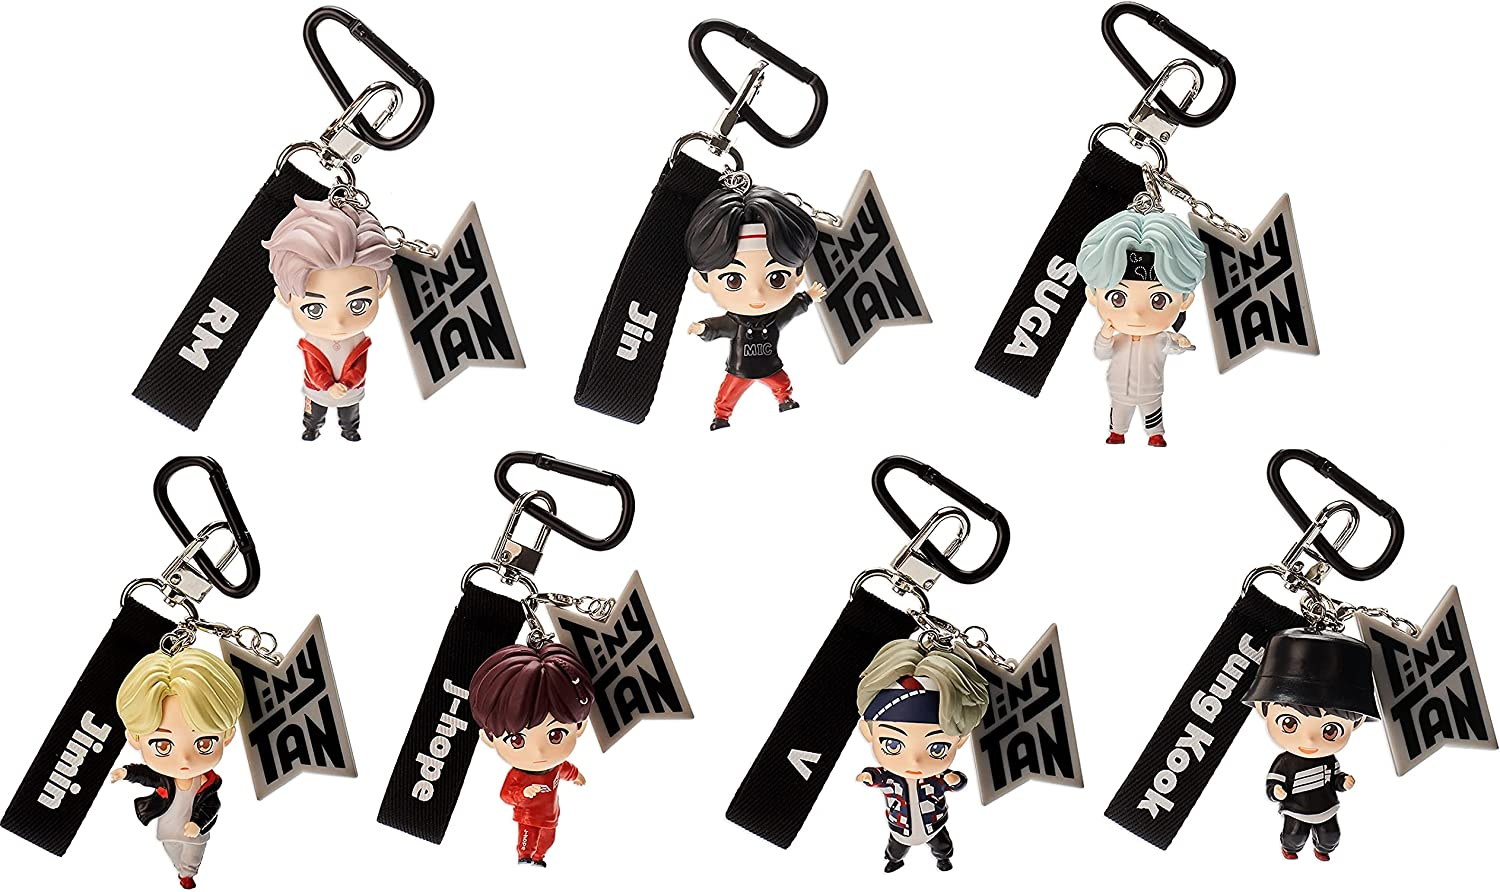 BTS Tinytan Figures Keychain Keyring Merchandise OFFicial mail order Lowest price challenge Bag Kpop Access